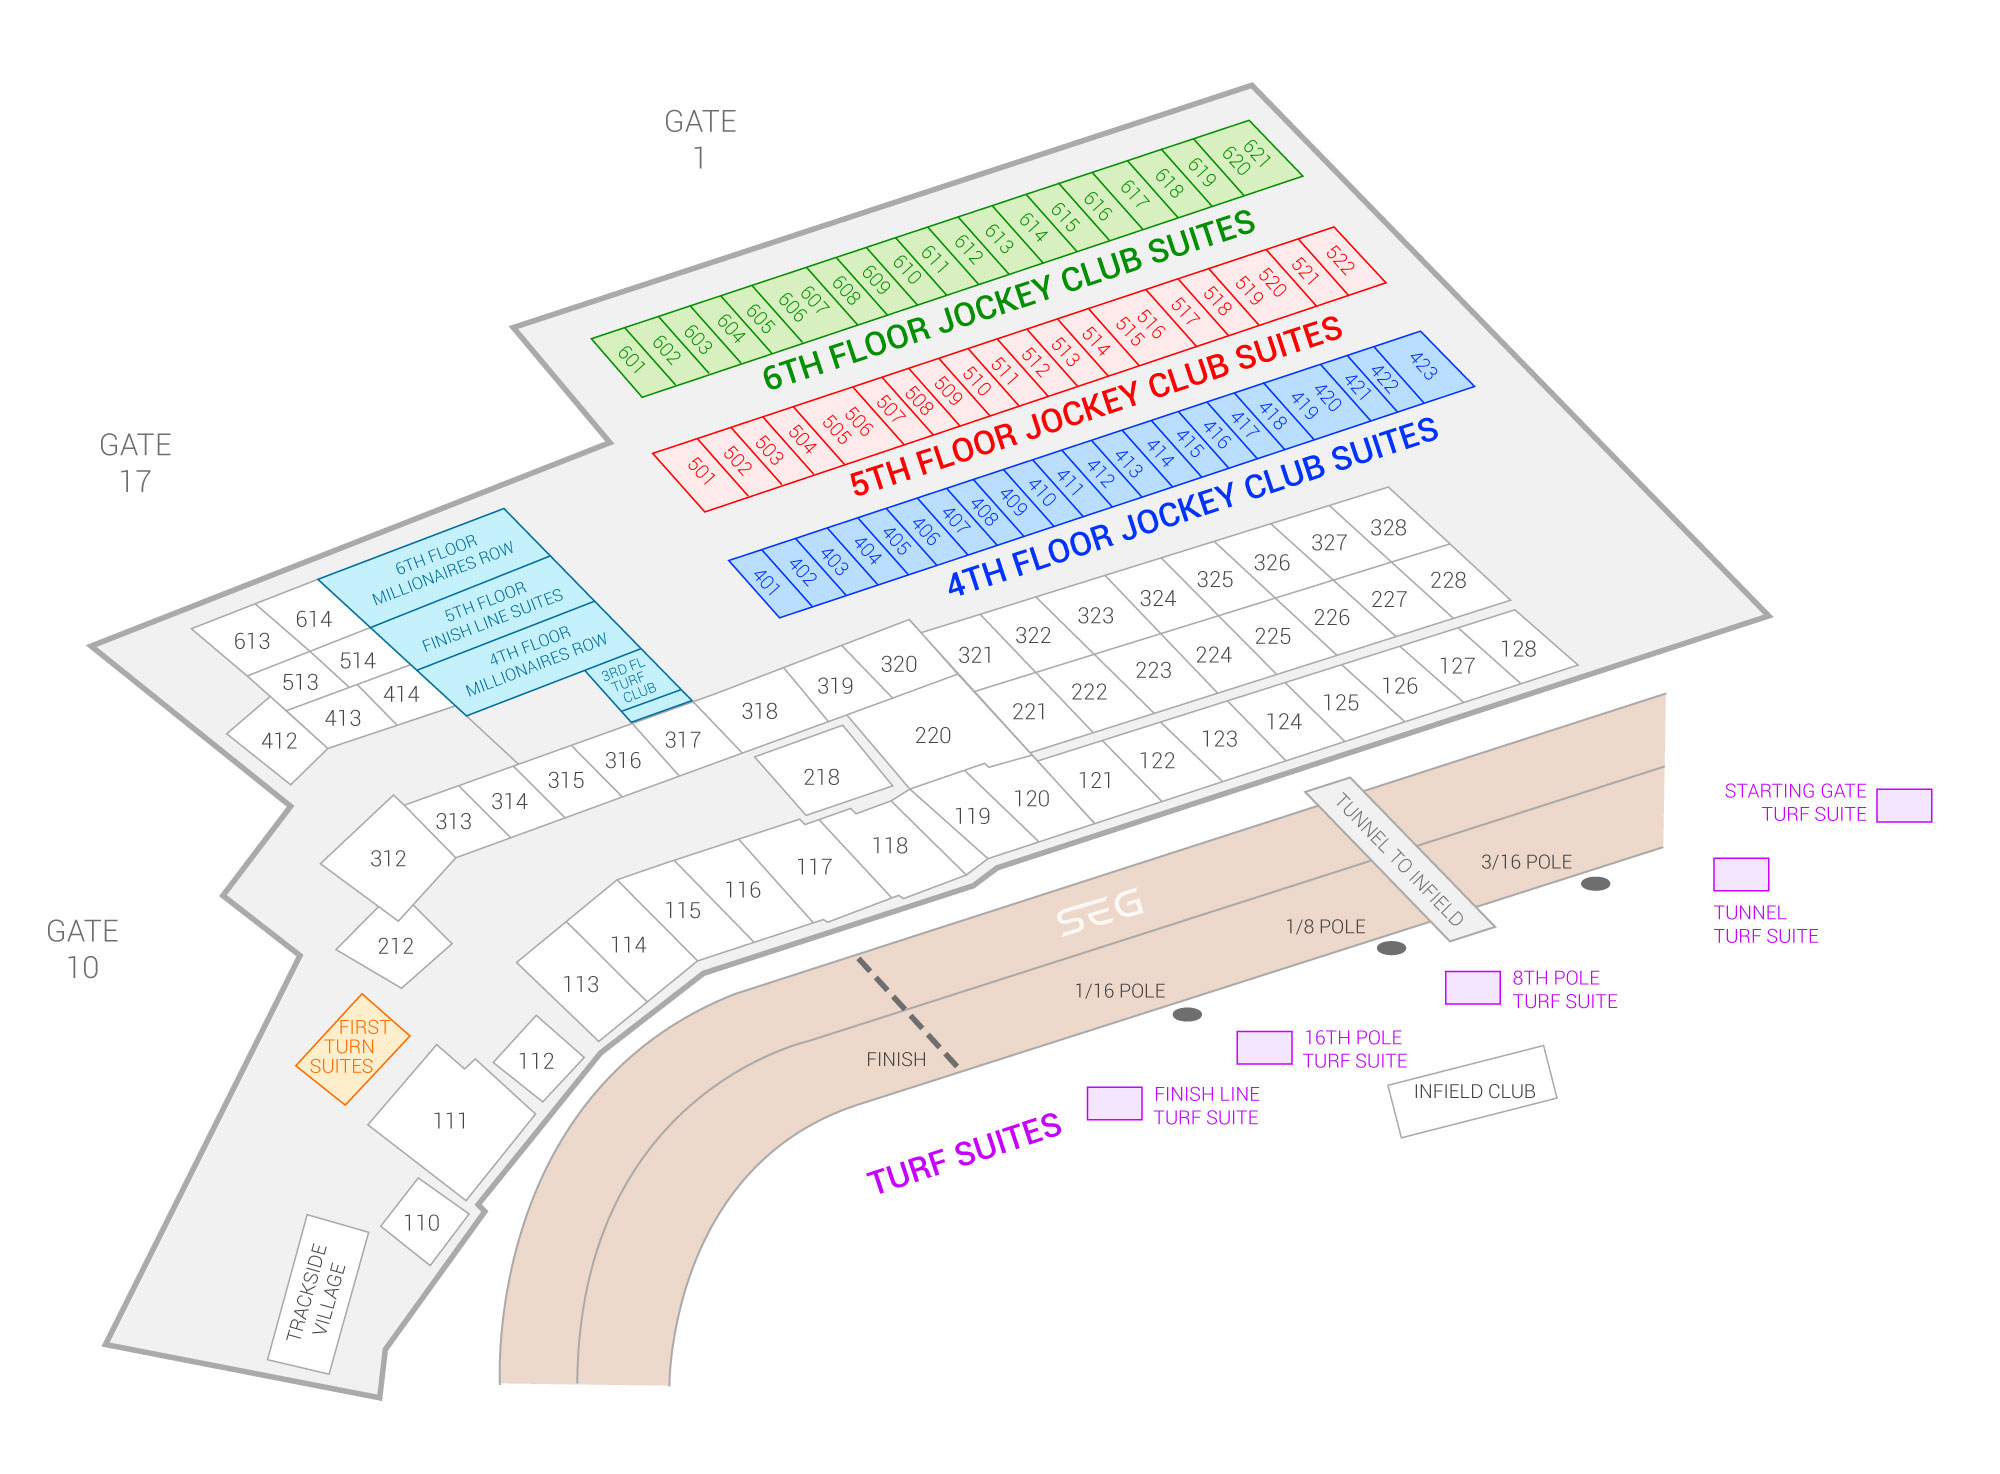 Churchill Downs / Kentucky Derby Suite Map and Seating Chart